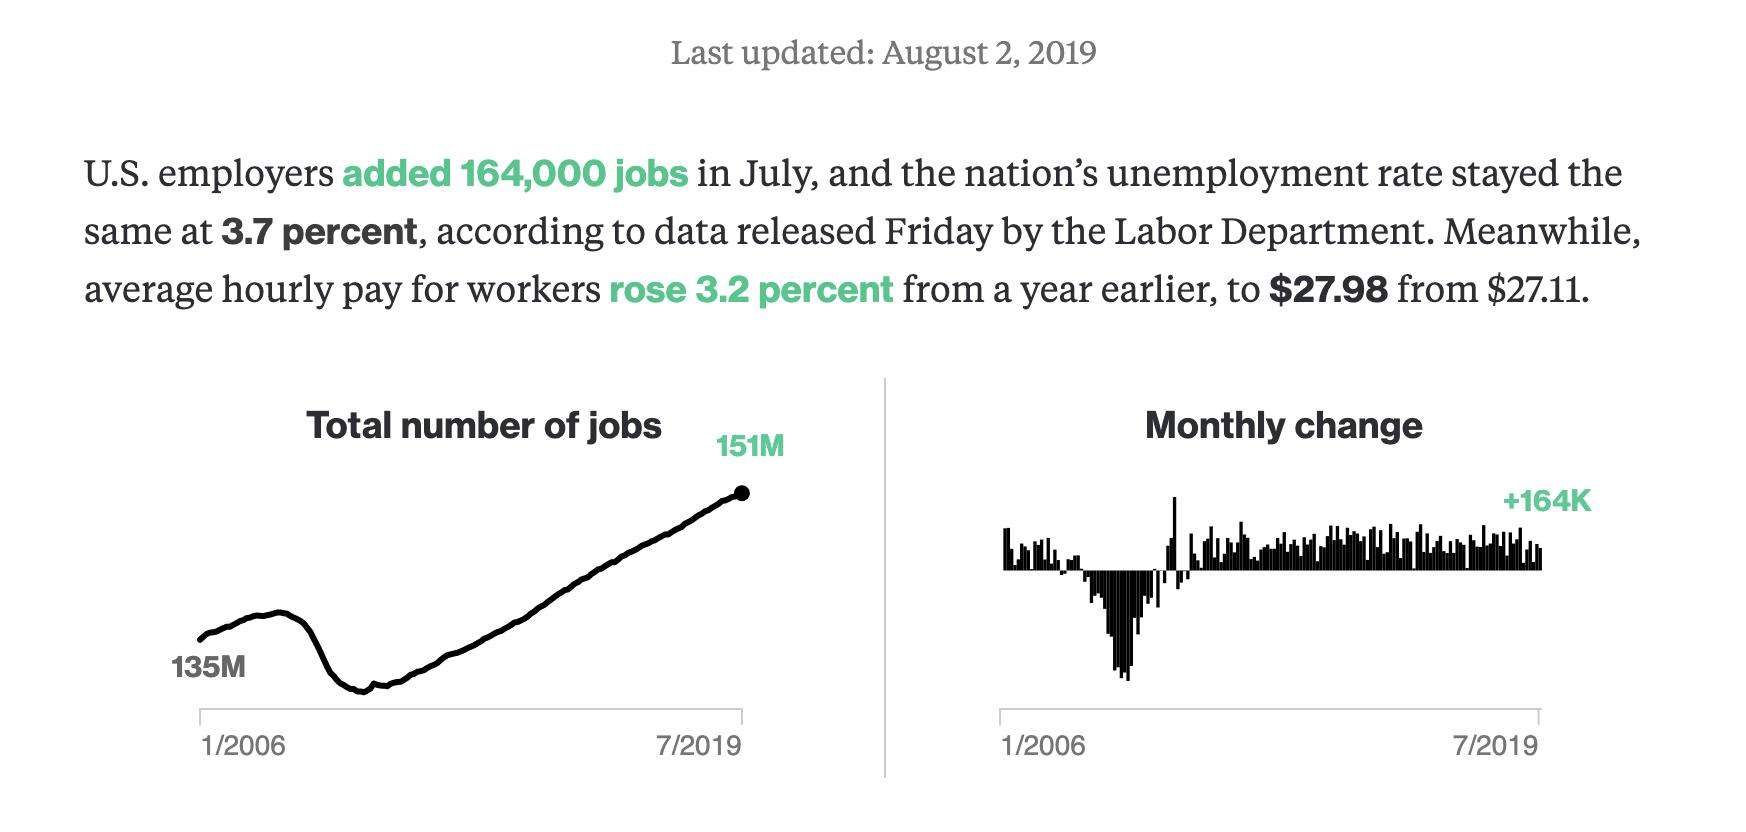 """Bloomberg Graphics on Twitter: """"U.S. employers added 164,000 jobs in July,  and the nation's unemployment rate stayed the same at 3.7 percent,  according to data released Friday by the Labor Department.  https://t.co/IBDhYFsesc…"""